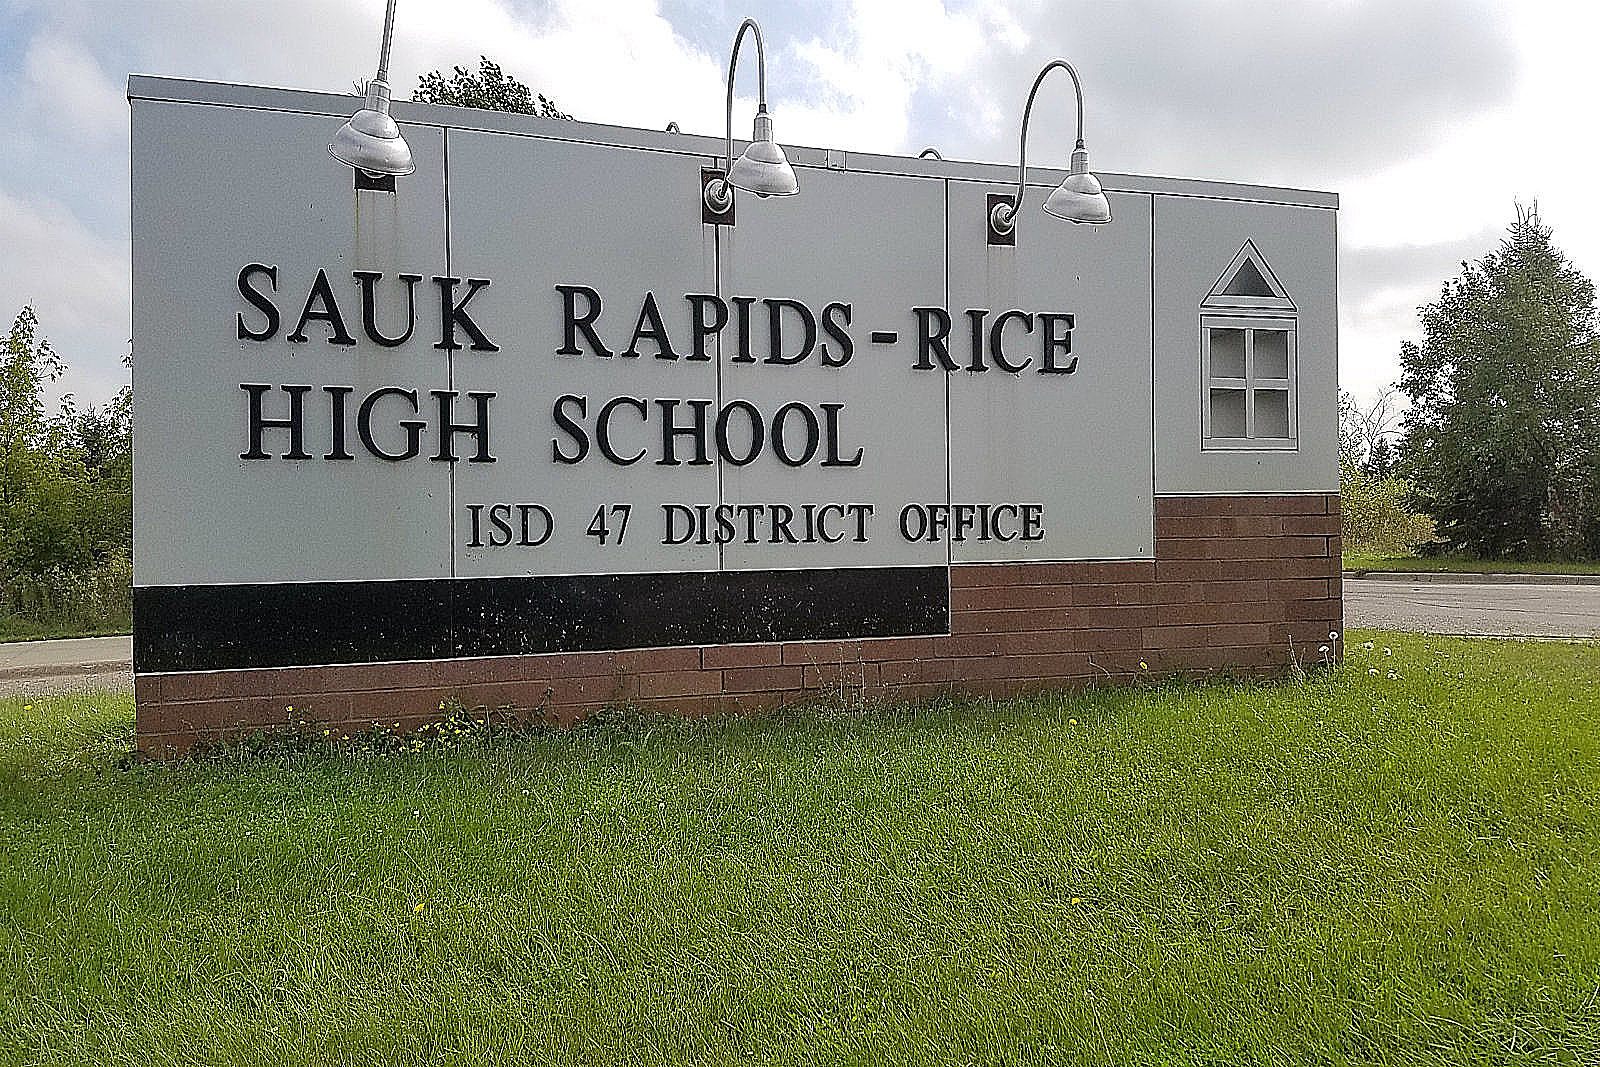 Sauk Rapids-Rice Announces New Round of Listening Sessions